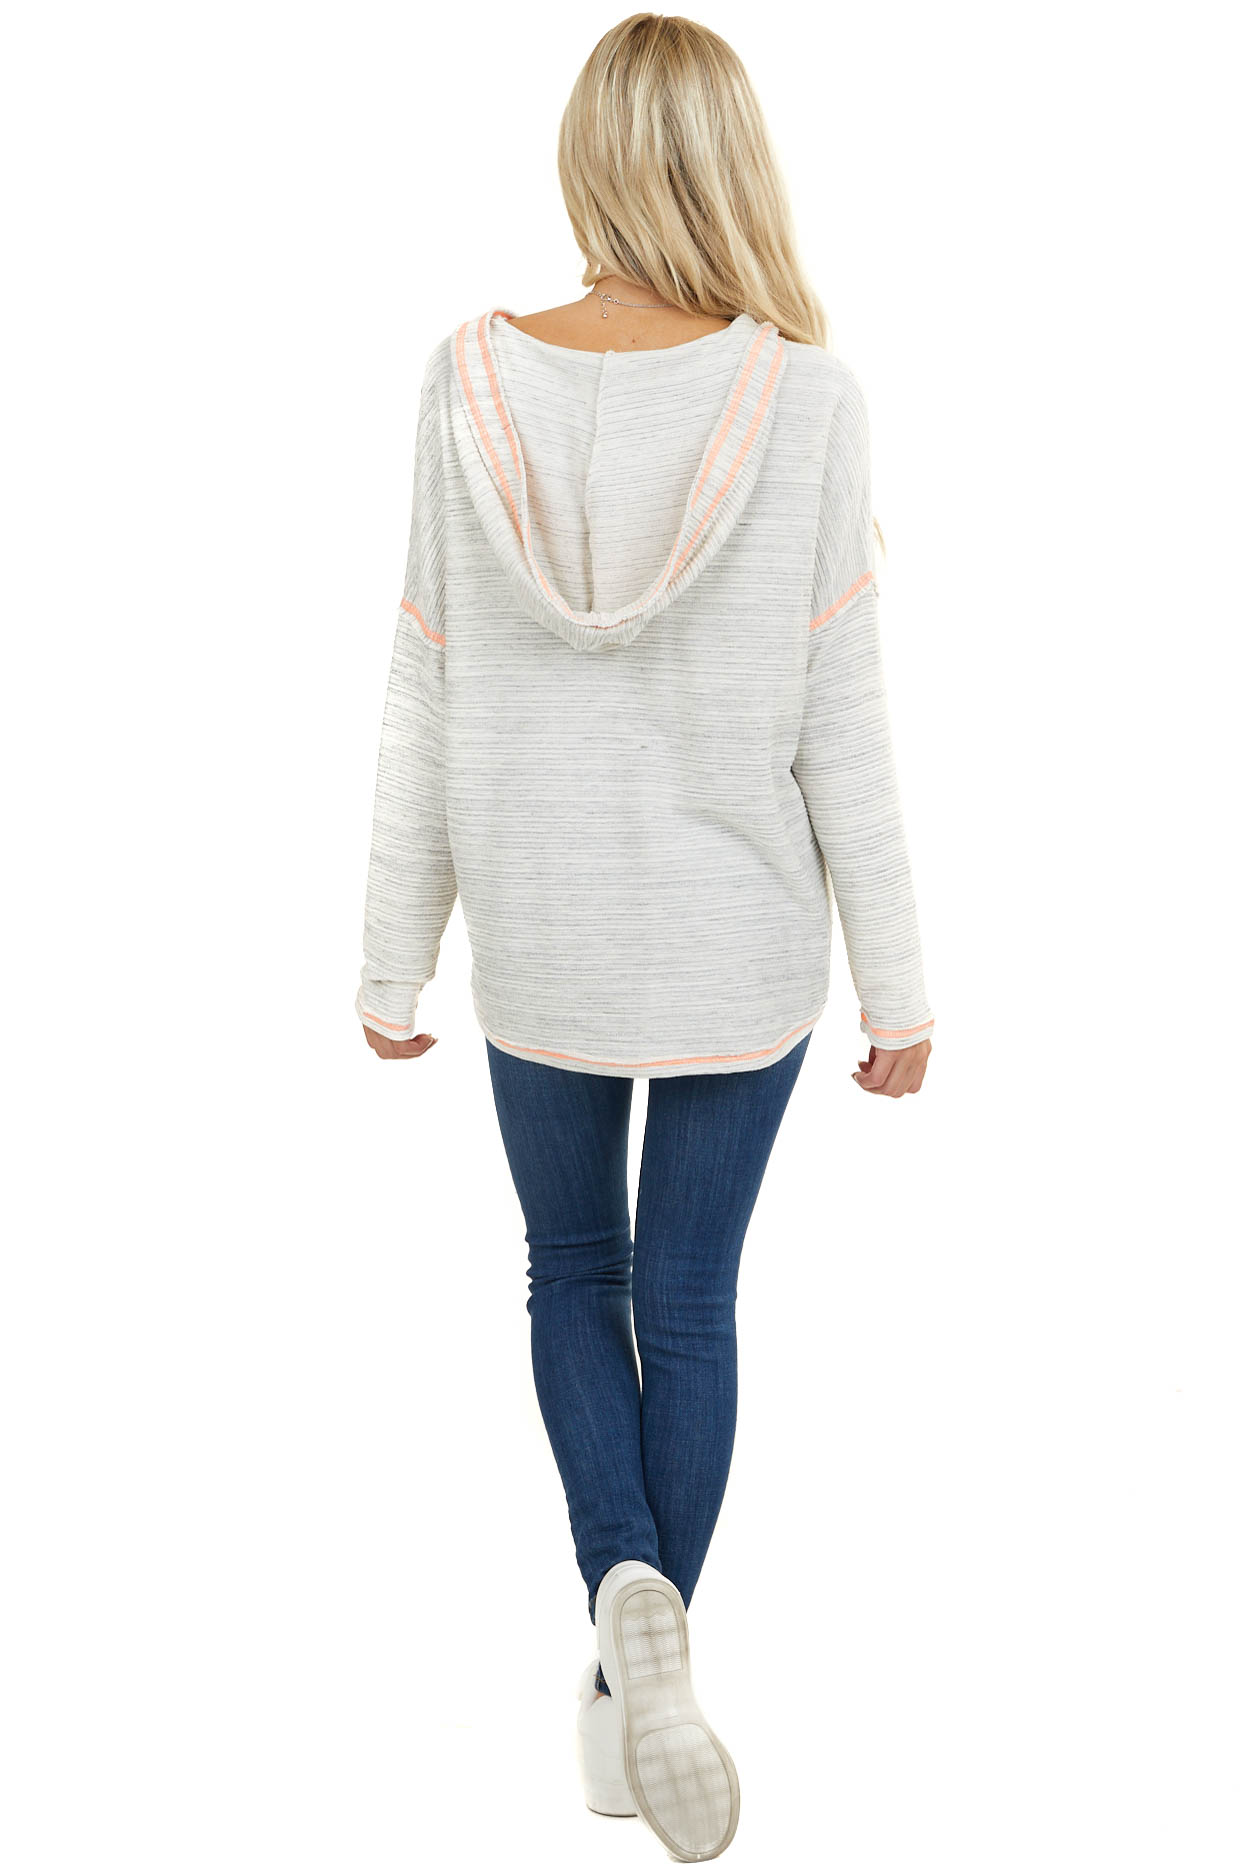 Heathered Ivory Textured Hoodie with Neon Stitching Detail